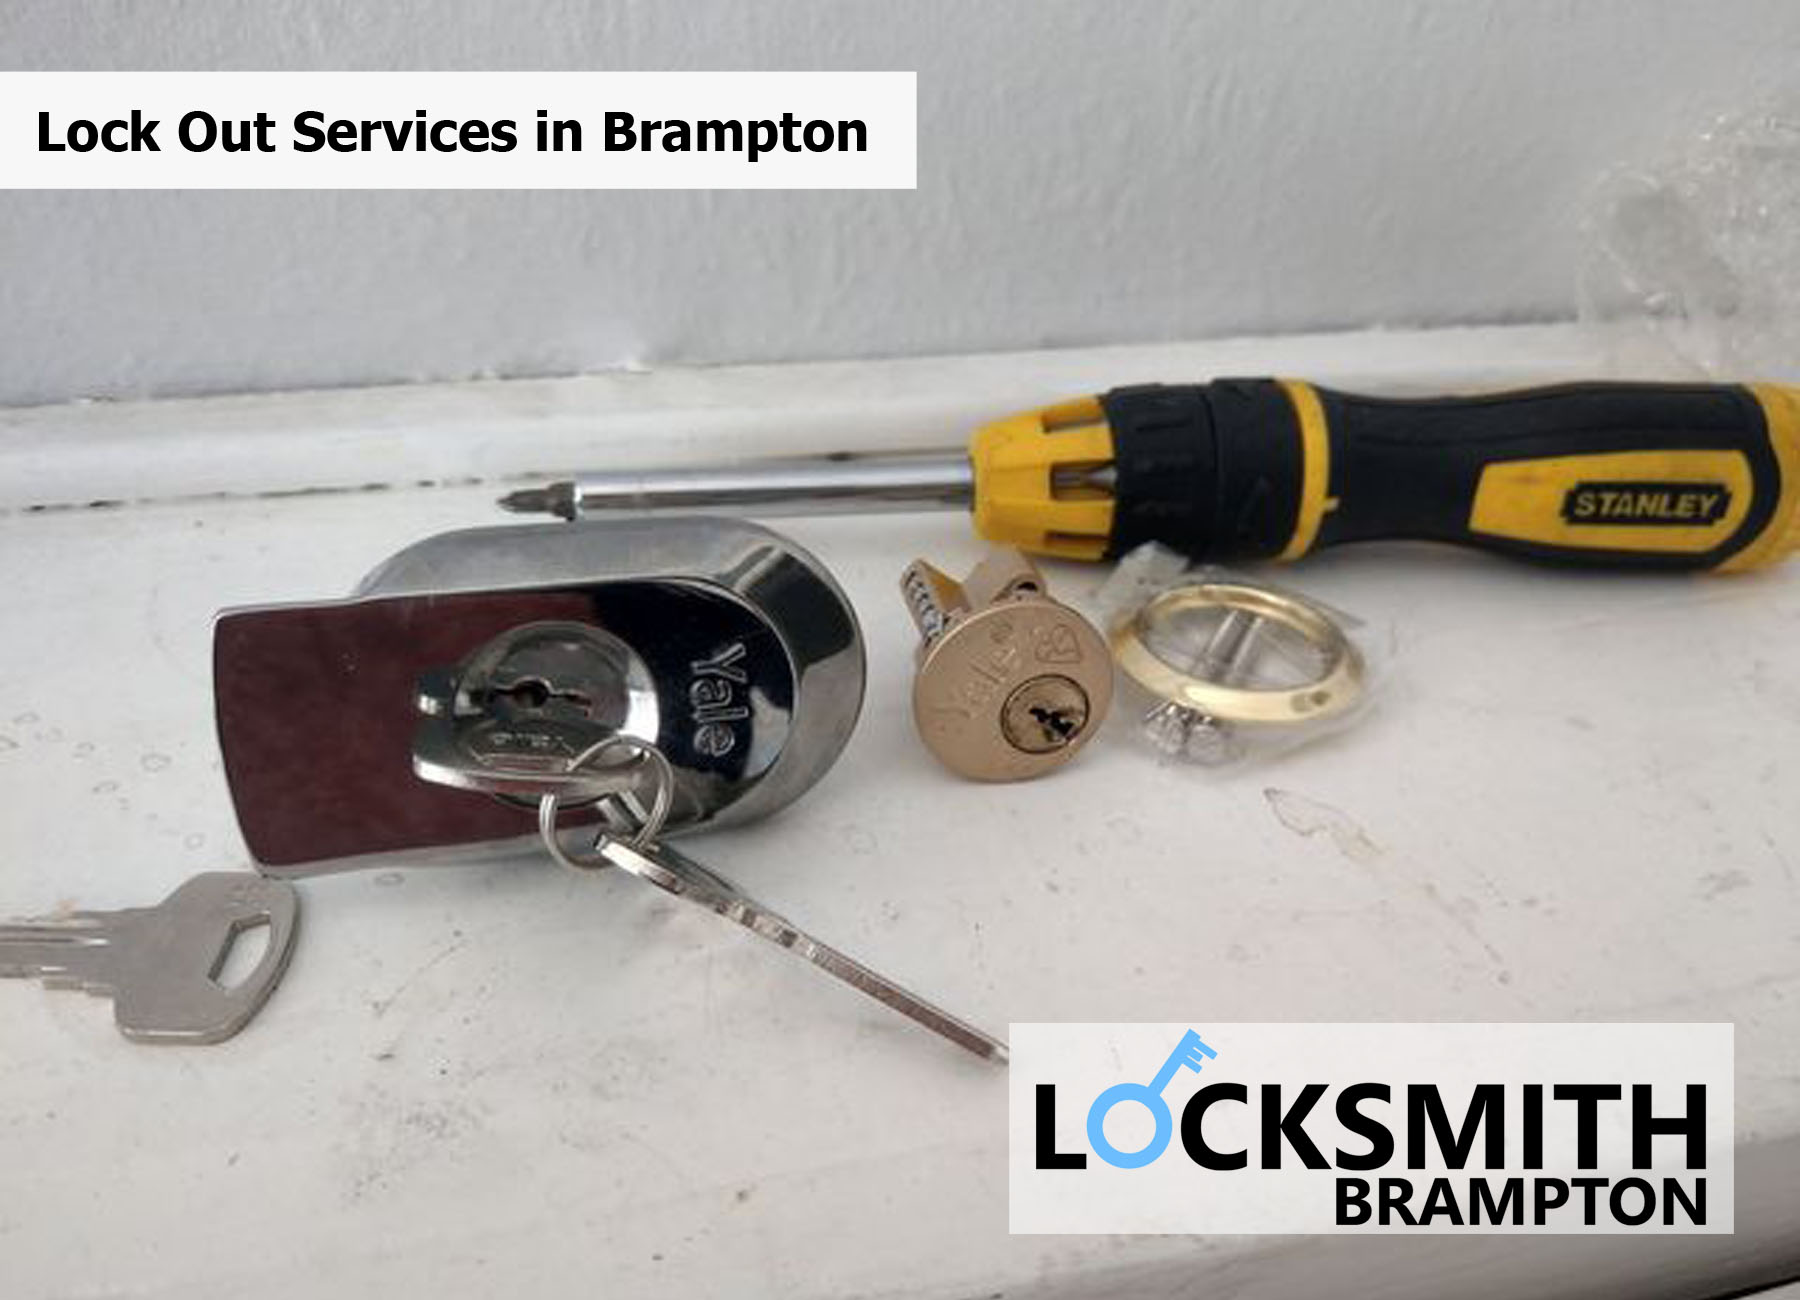 Lock Out Services in Brampton